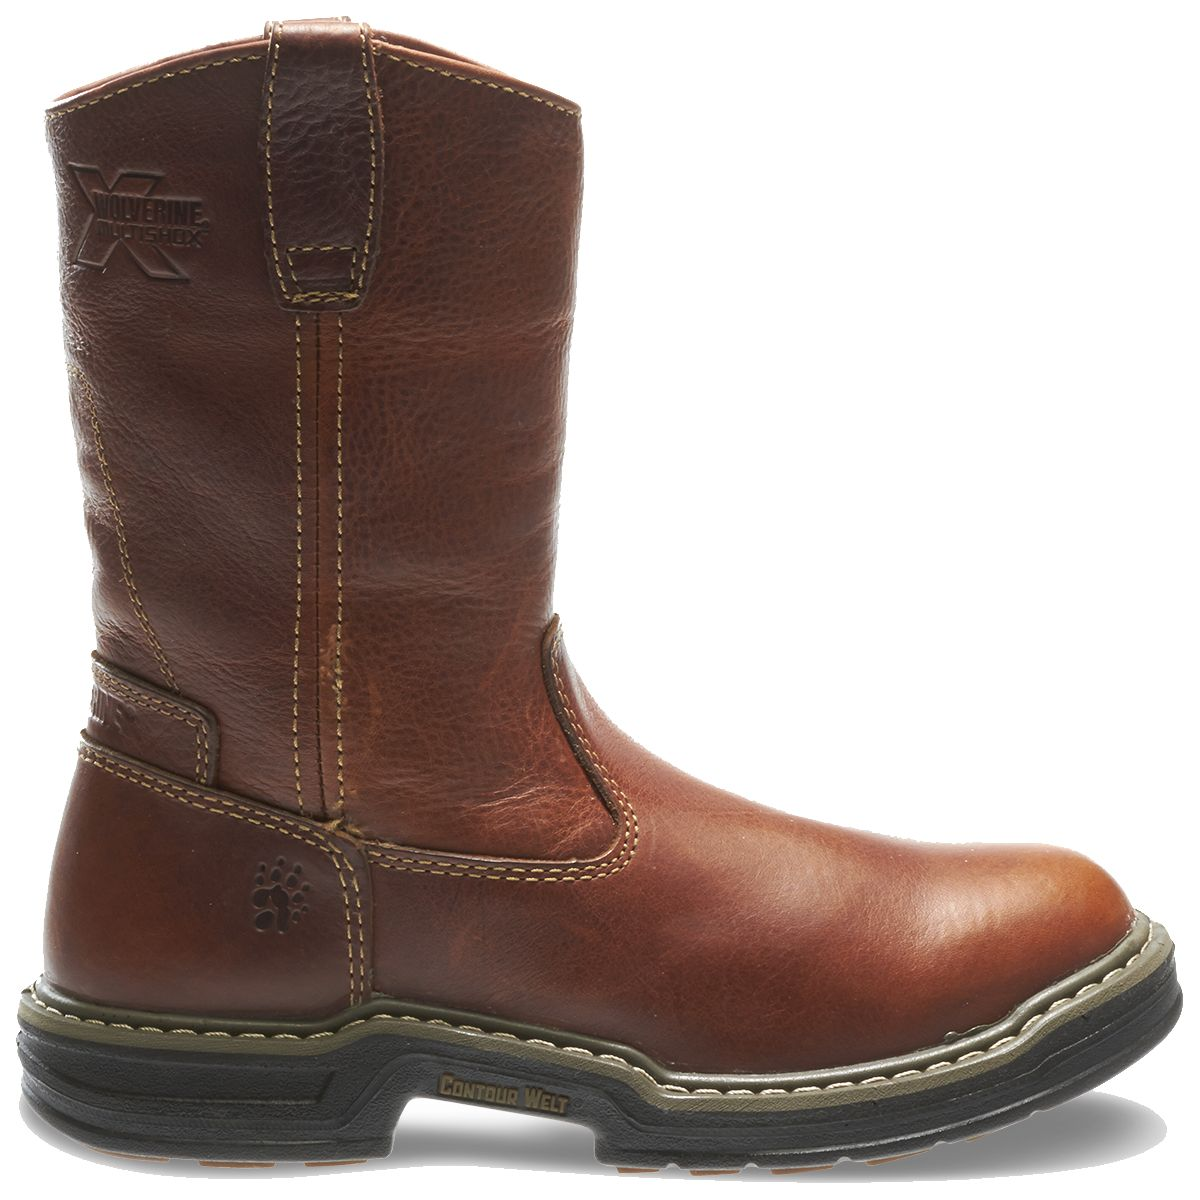 cab56c6f328 Wolverine Raider Wellington Boot - Mens